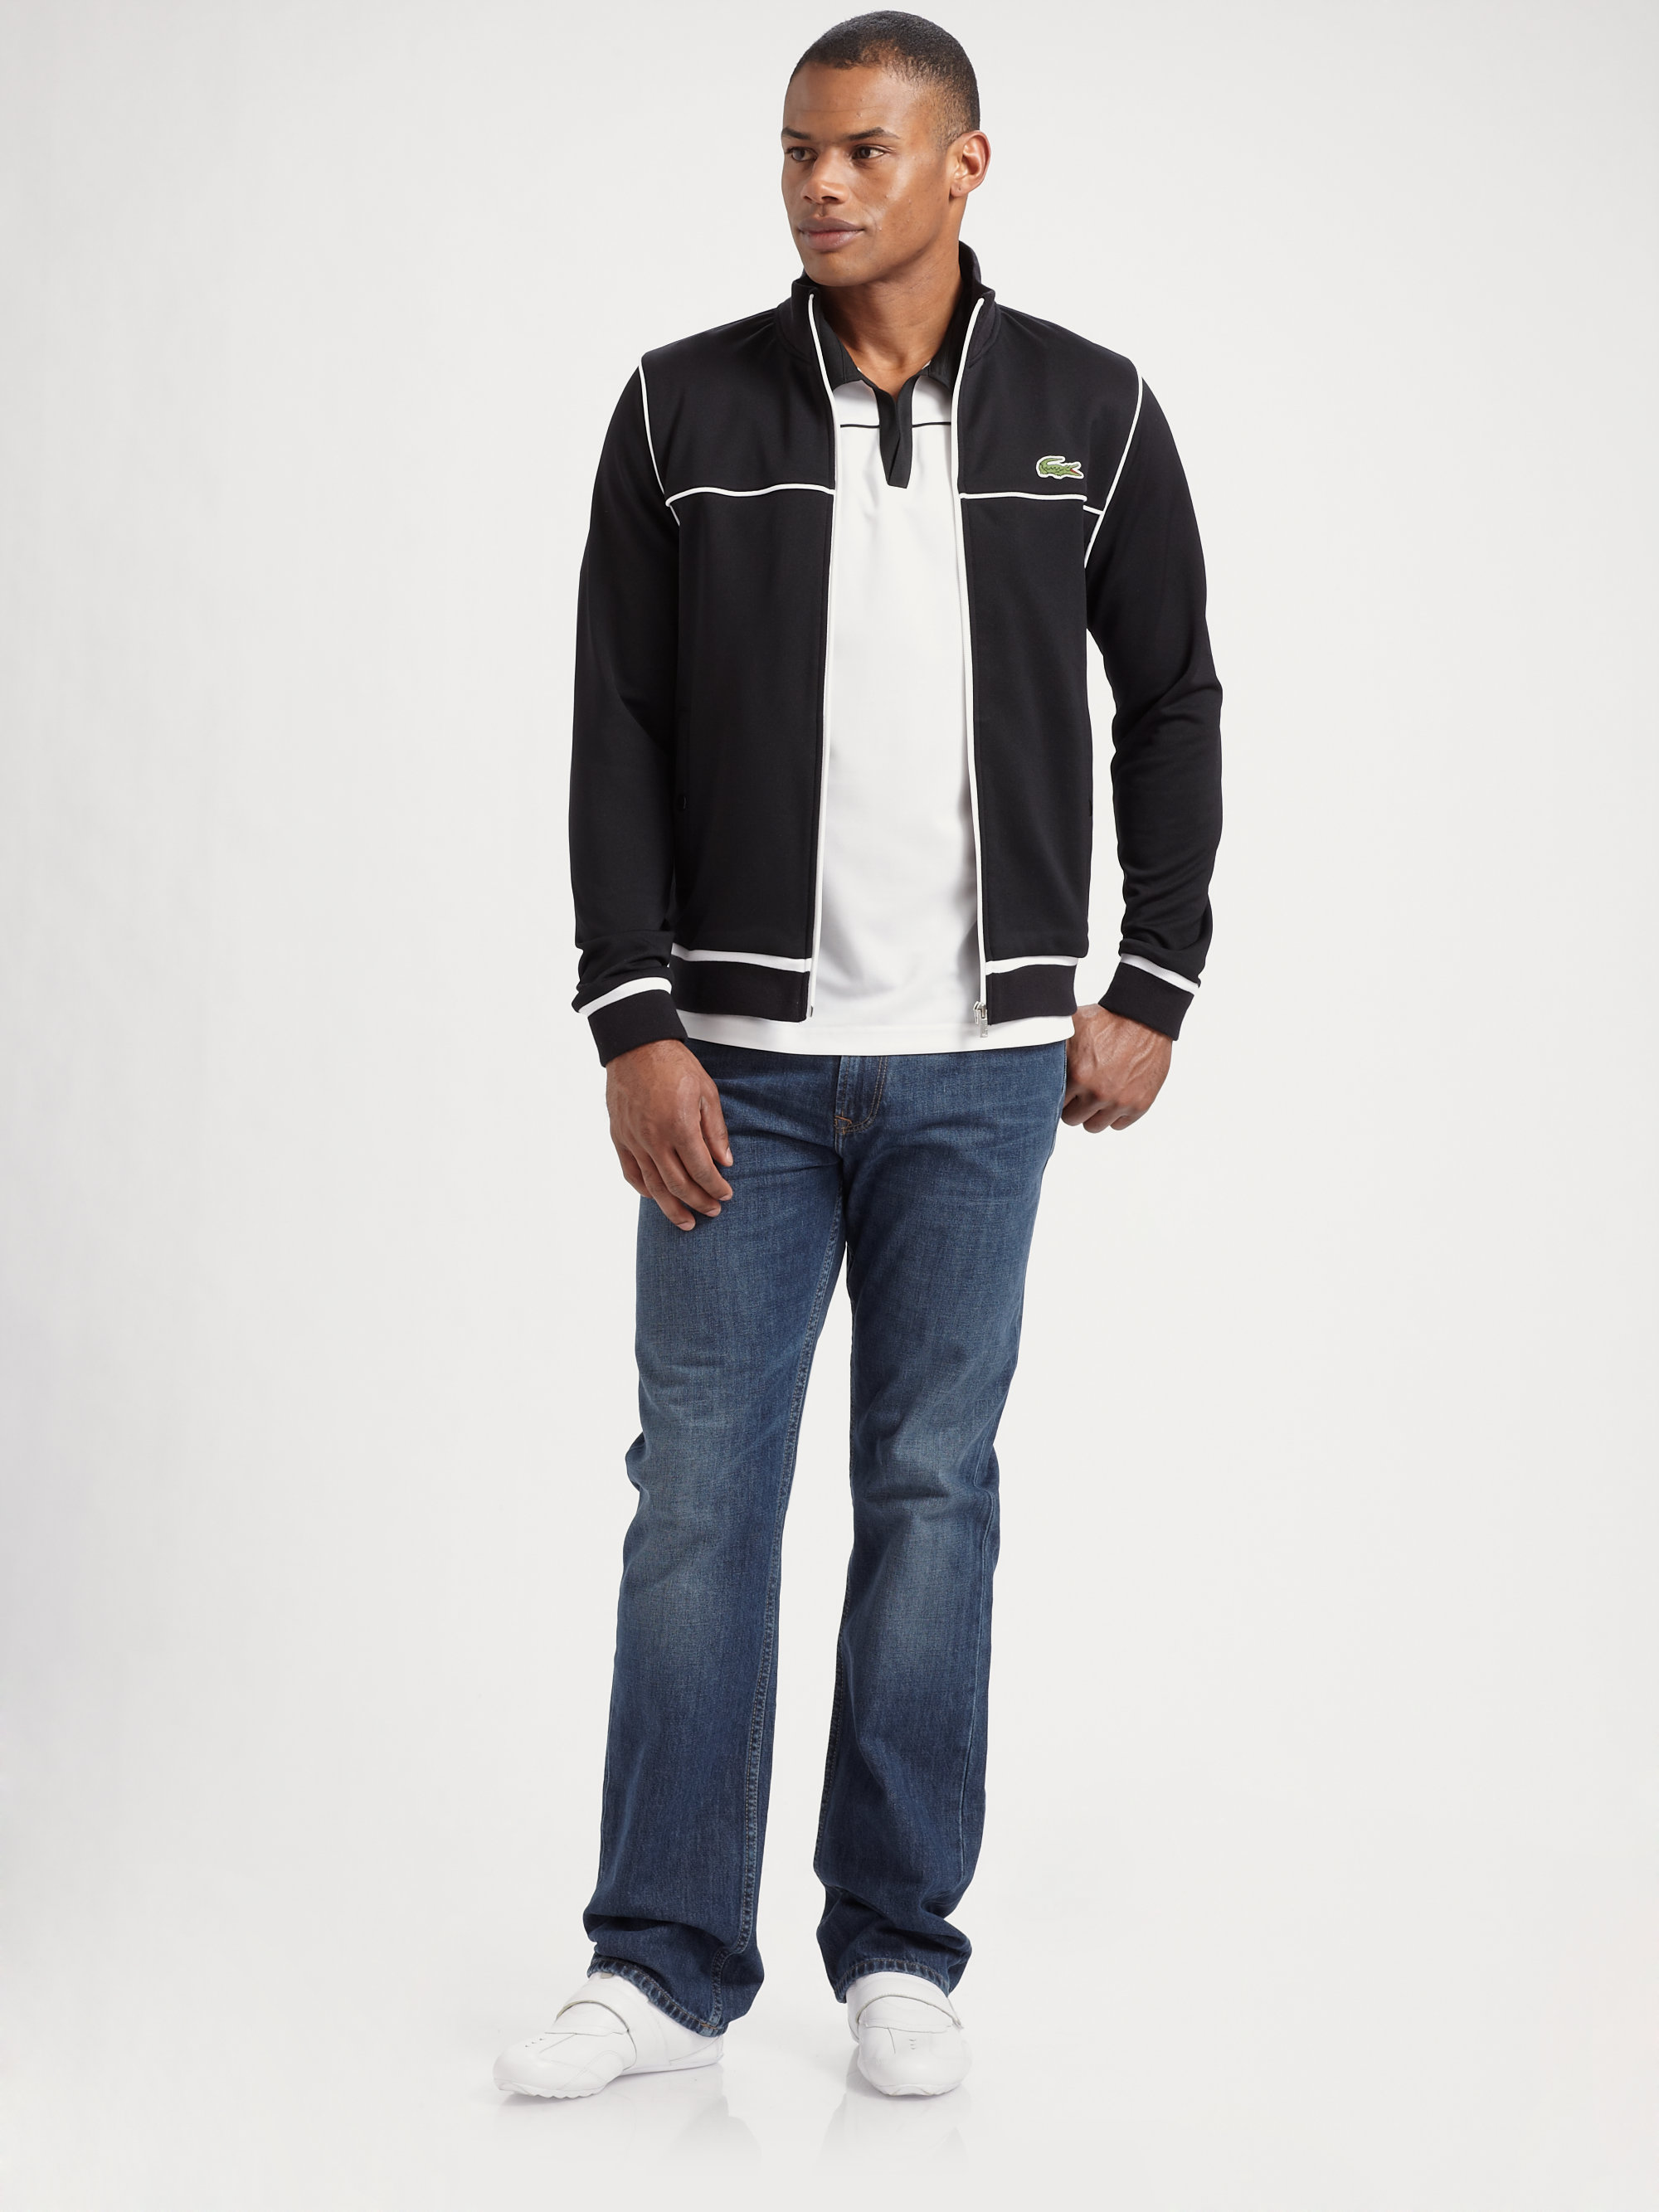 a9e32d1edeabb5 Lyst - Lacoste Andy Roddick Superdry Track Jacket in White for Men